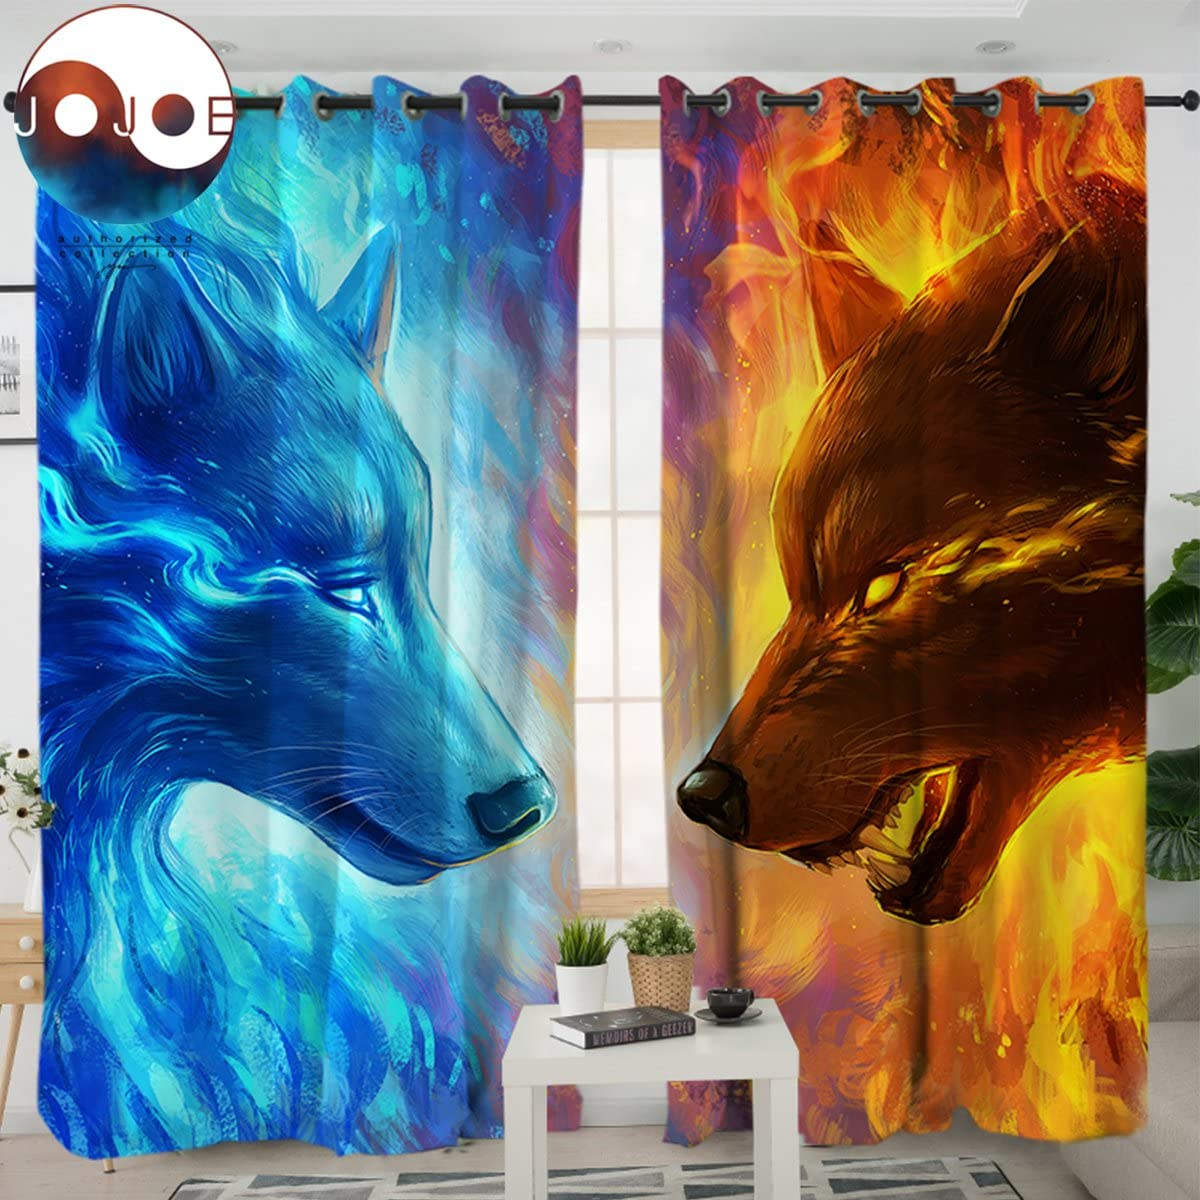 Sleepwish Fire and Ice by JoJoesArt Wolf Curtains for Windows 3D Animal Panels Blackout Shades Men Curtains Grommet Curtain 2 Panels, 52×96 Inch, Hook Top